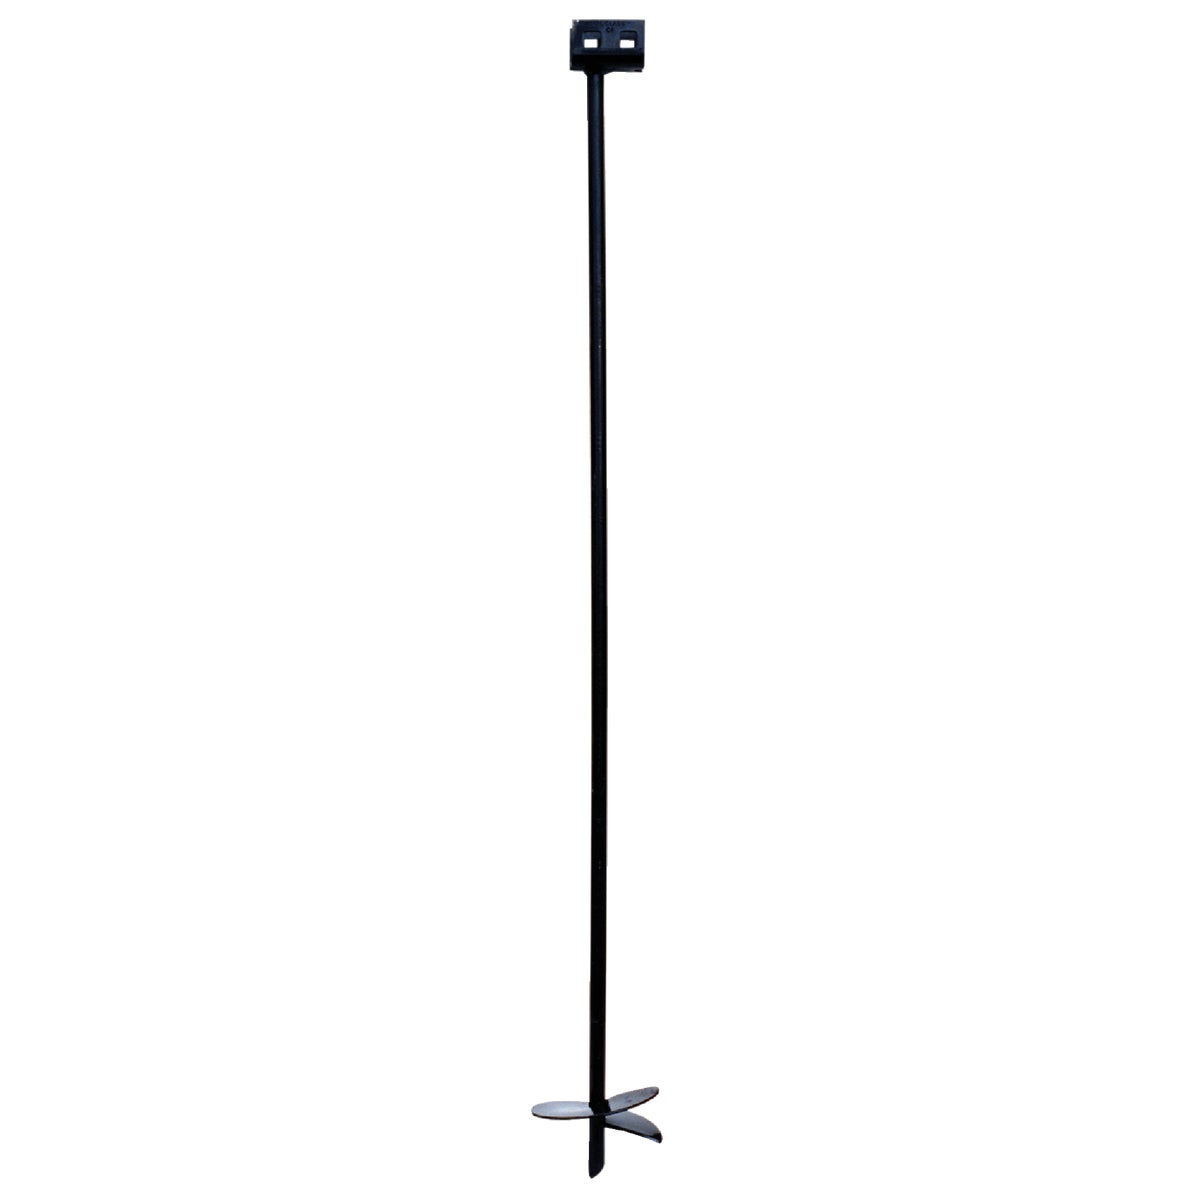 "5/8""X48"" EARTH ANCHOR - 59080L by Tie Down Engineering"